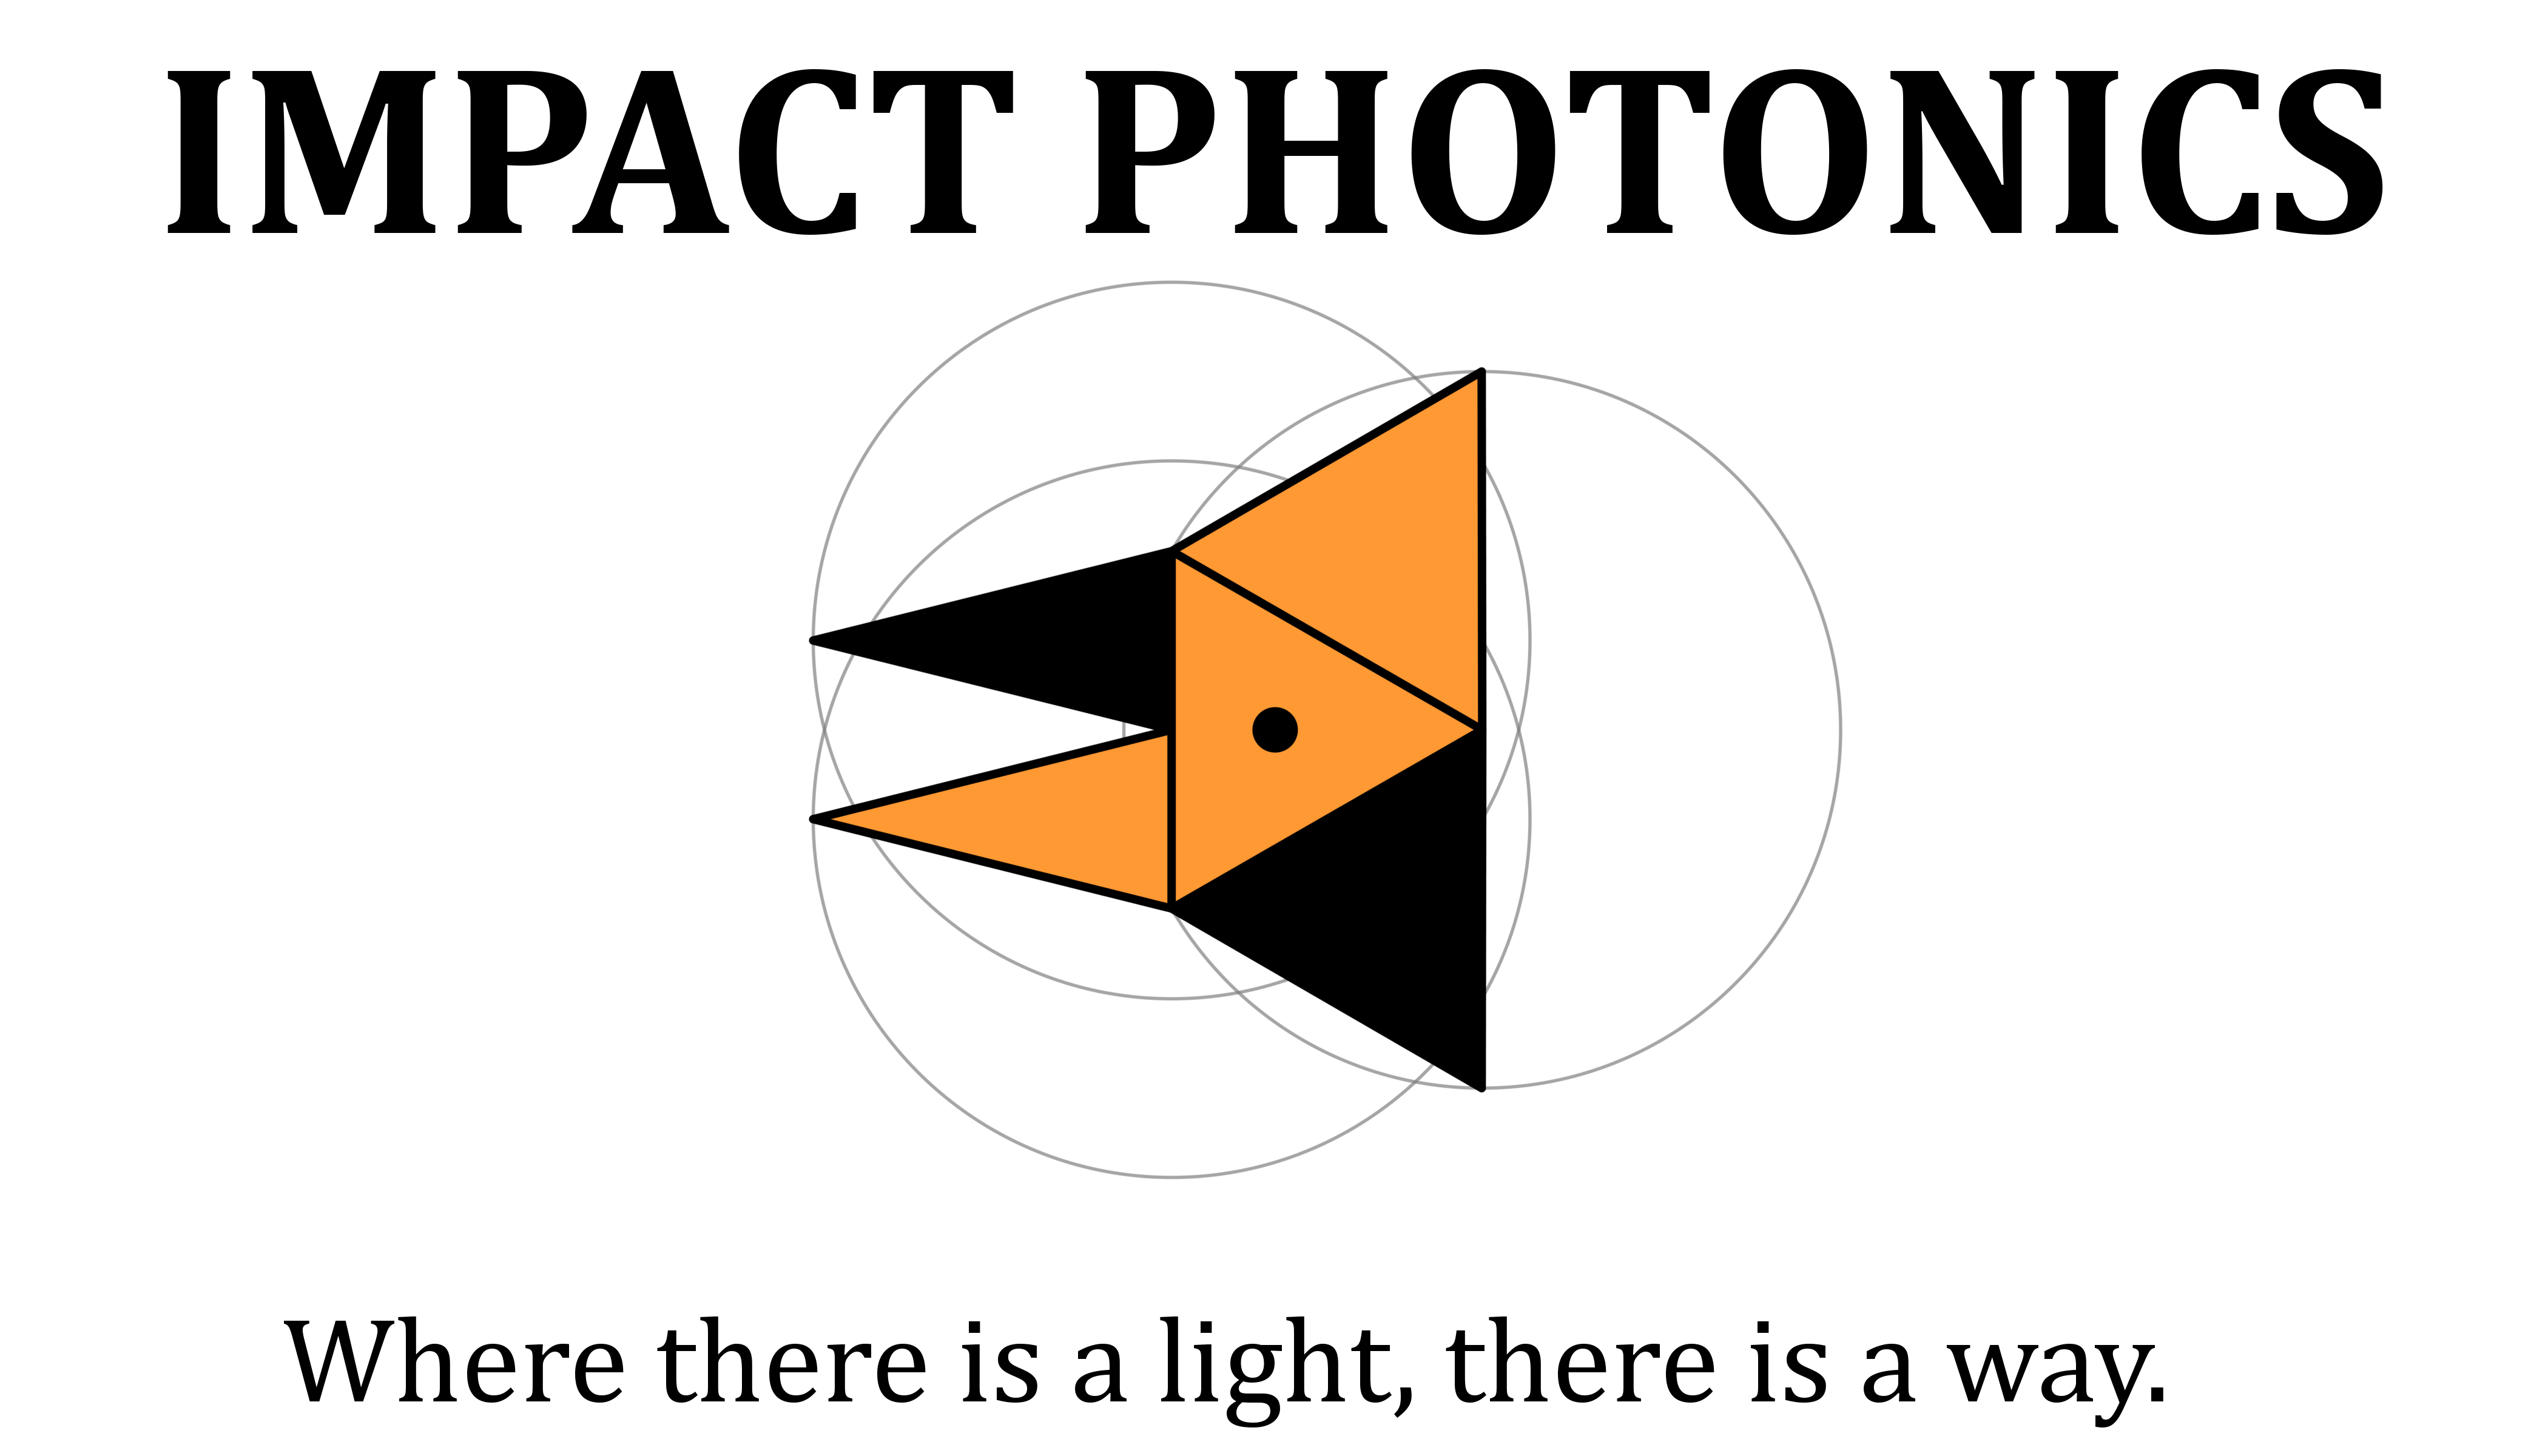 Impact Photonics – Where there is a light, there is a way